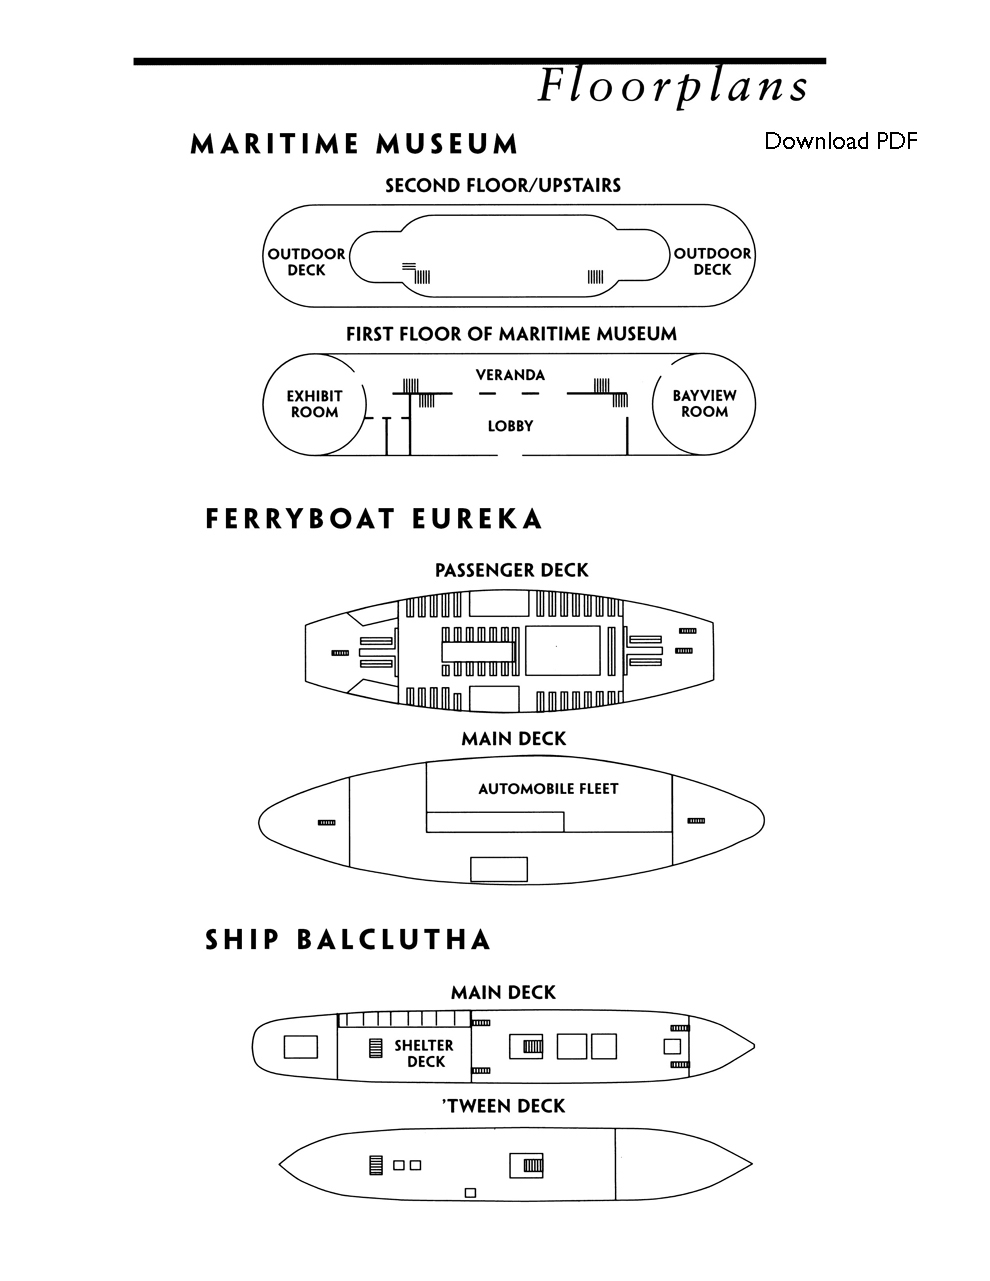 Floorplans of Museum Building, Ferryboat Eureka, and Ship Balclutha